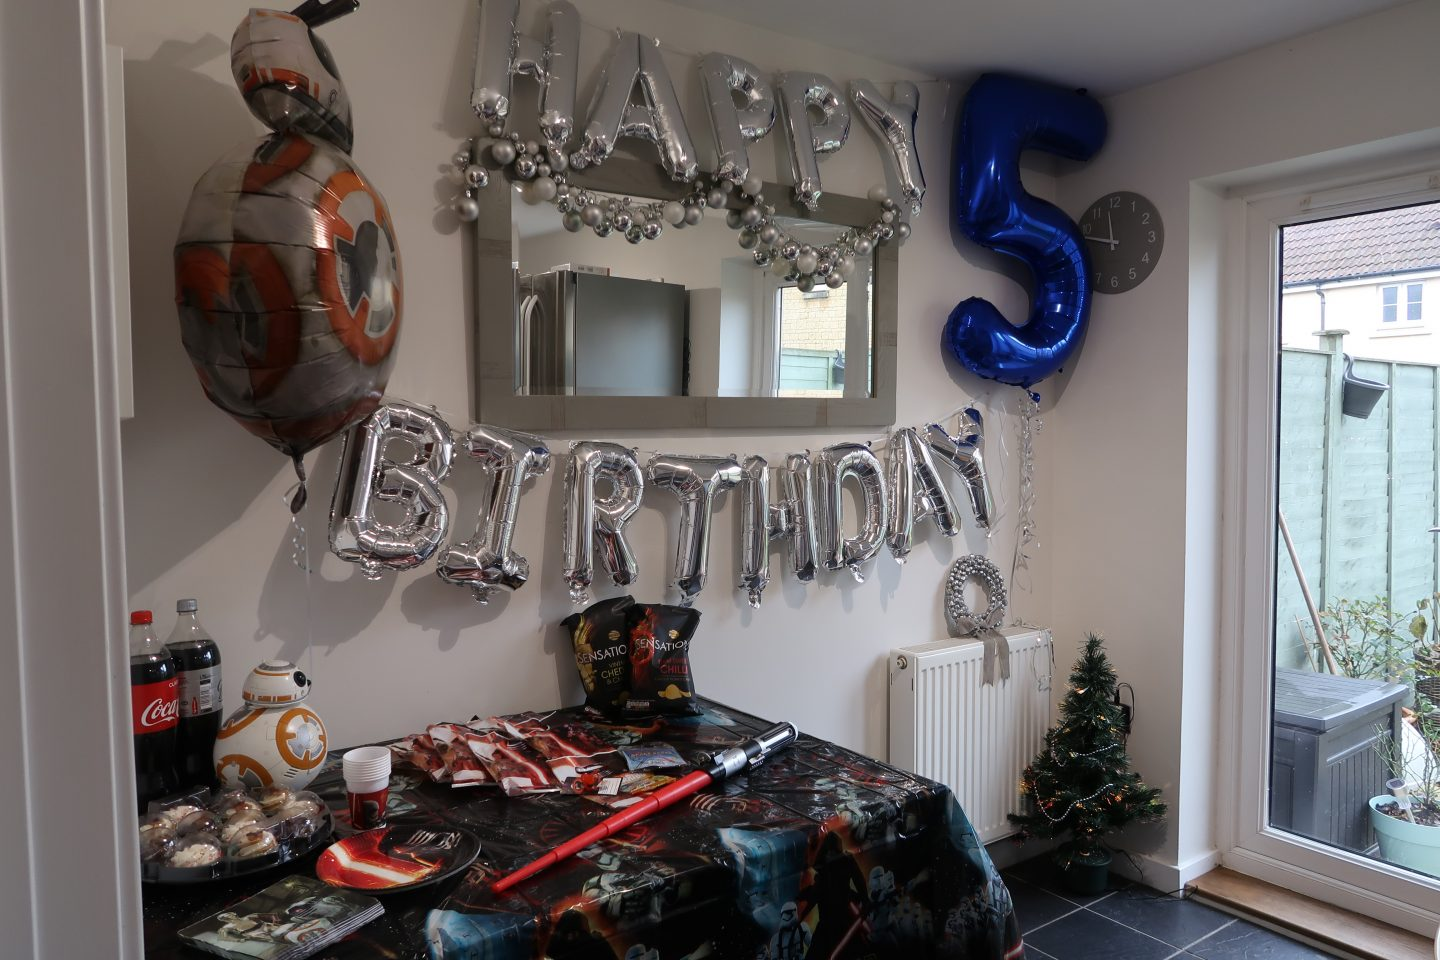 Ollie's 5th Birthday | Star Wars Party Pack from Party Bags & Supplies REVIEW